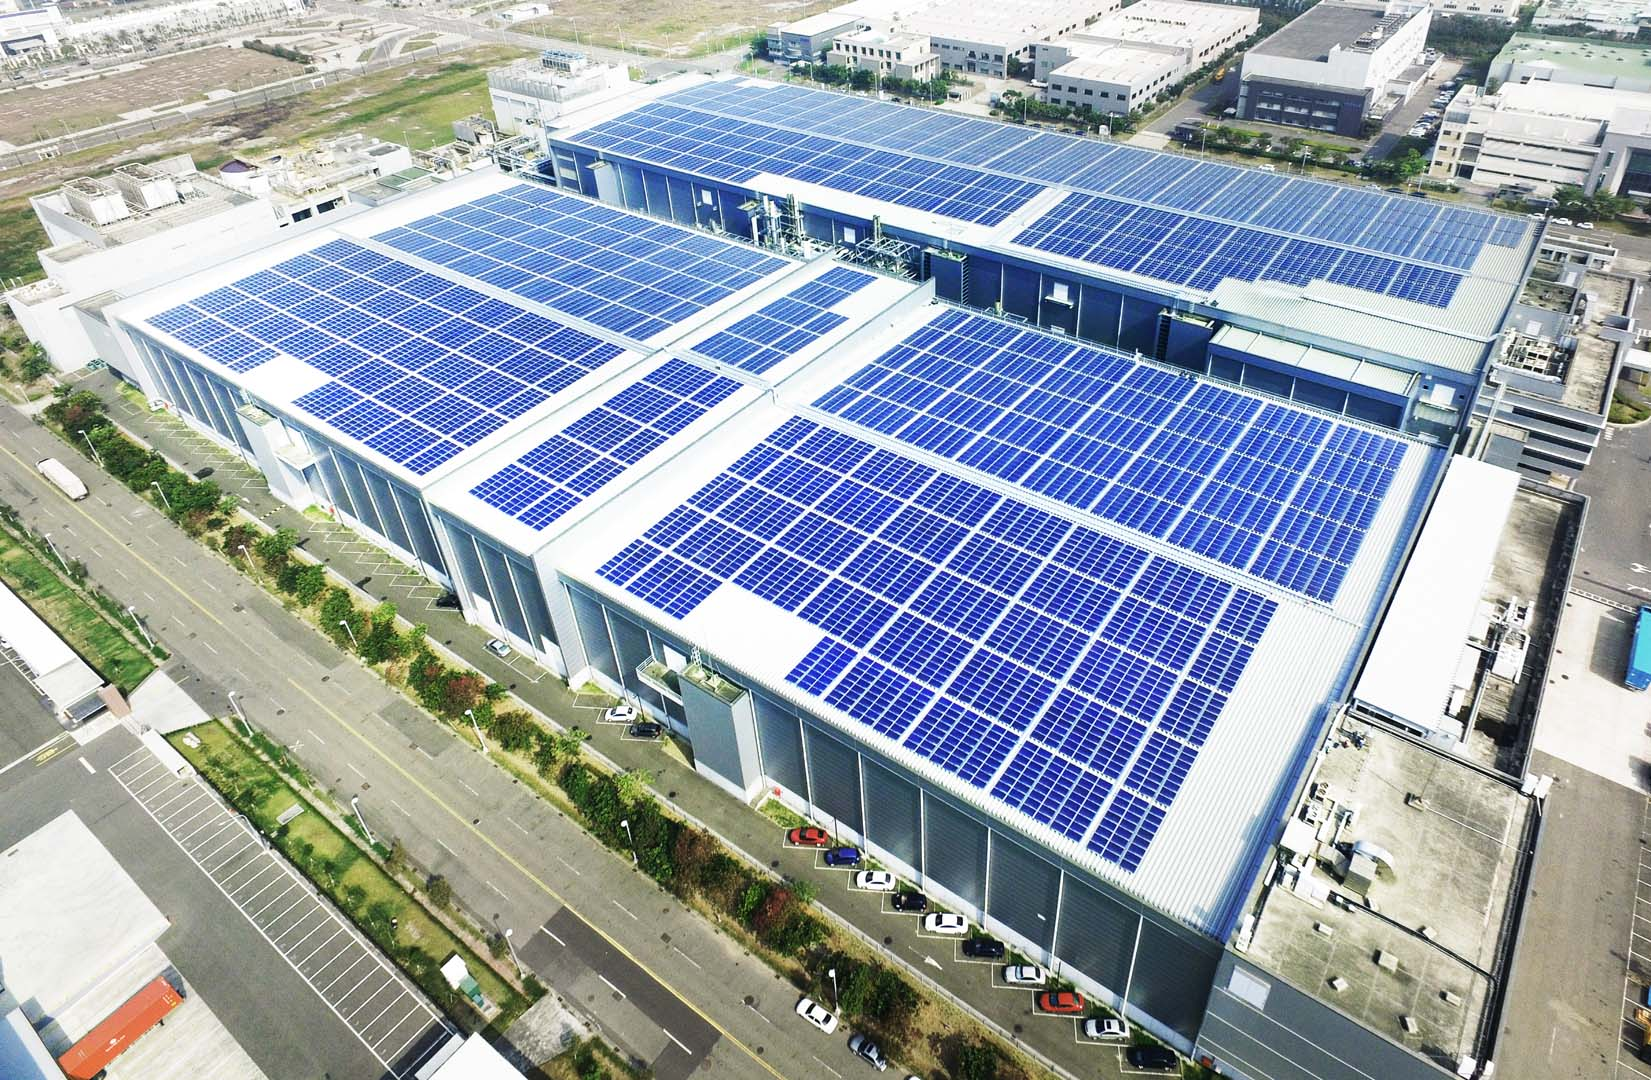 The project at Tainan Technology Industrial Park includes 14,880 modules. Credit: AUO